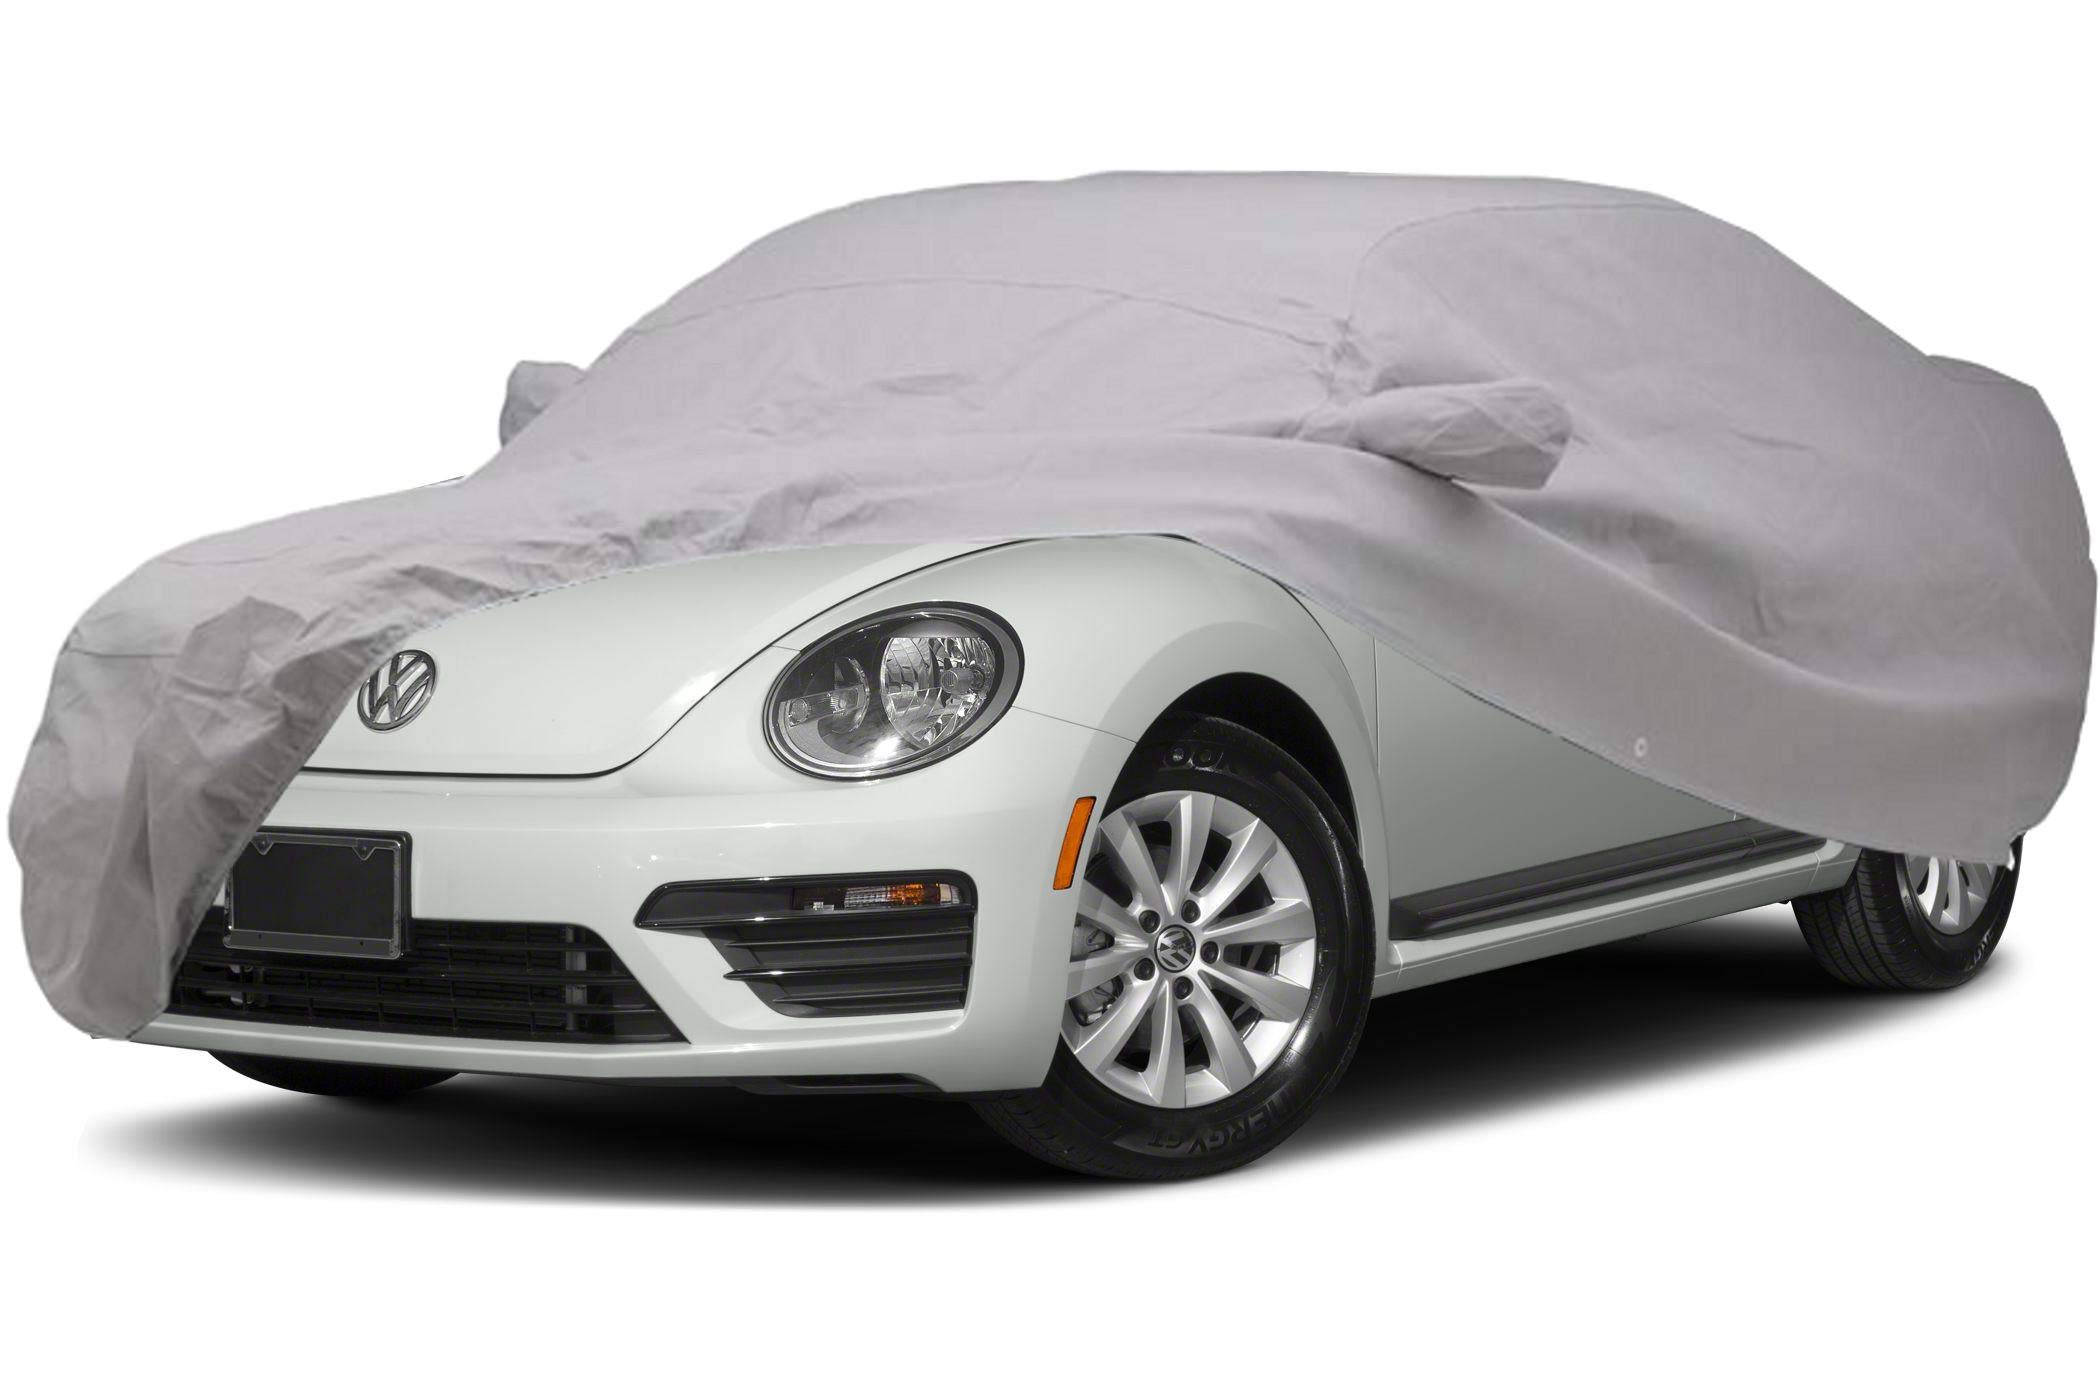 CarsCover Custom Fit 2011-2019 Volkswagen Beetle Car Cover for 5 Layer Ultrashield Waterproof VW Beetle